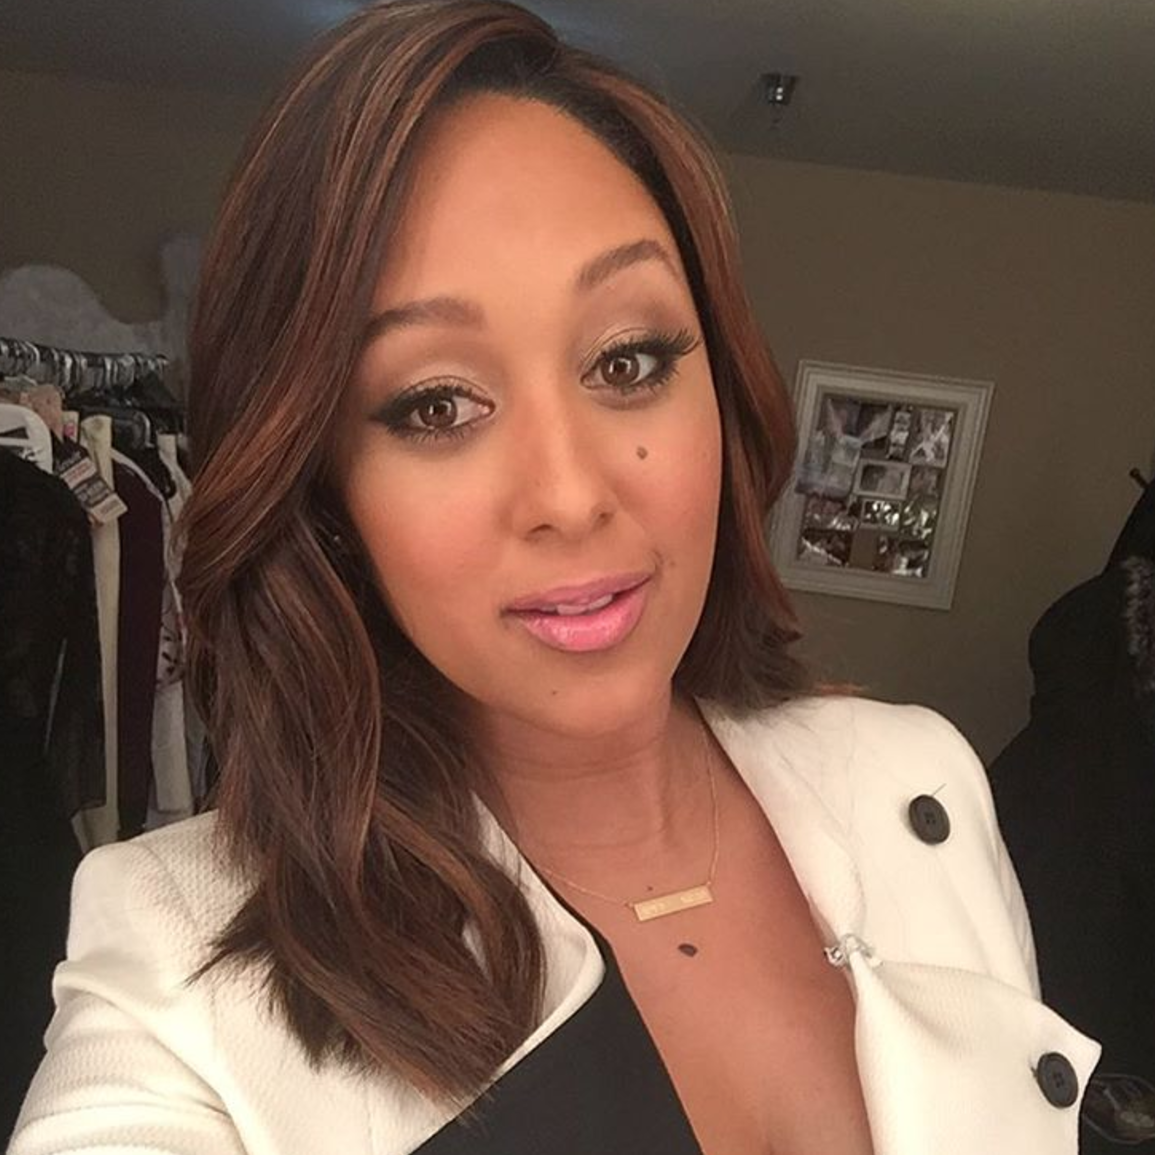 Selfie Tamera Mowry nude (87 photos), Tits, Sideboobs, Instagram, swimsuit 2018